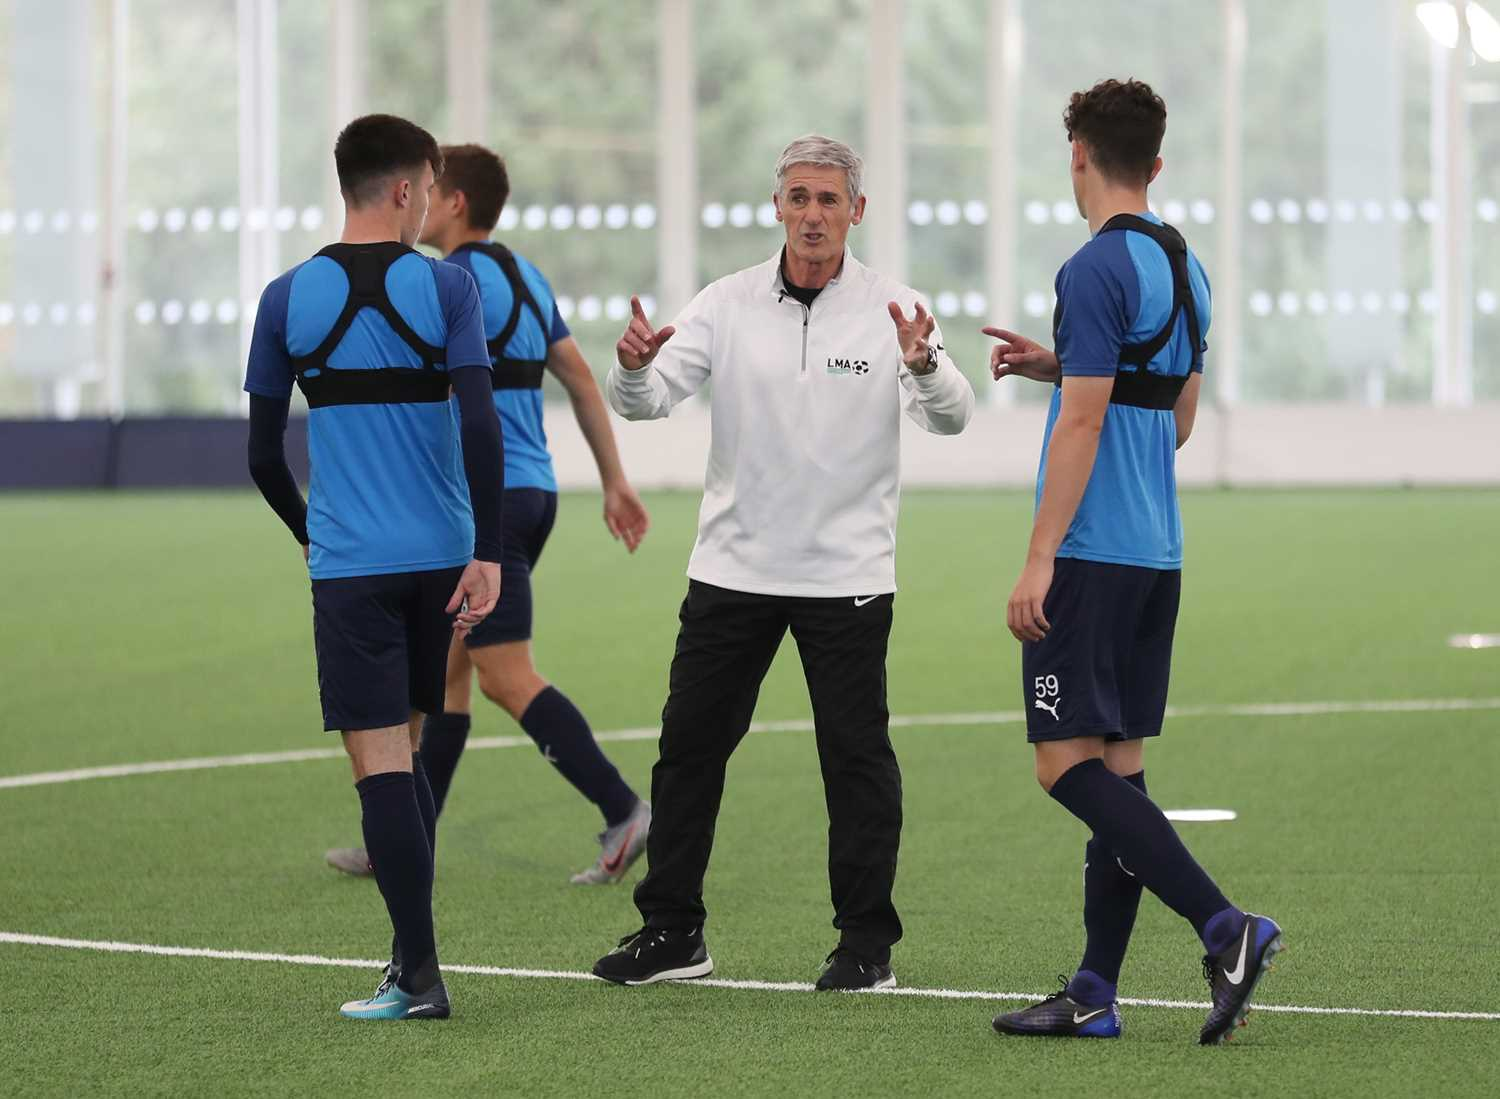 Exclusive Coaching Session with a League Managers Association Ambassador A chance for your - Image 2 of 3